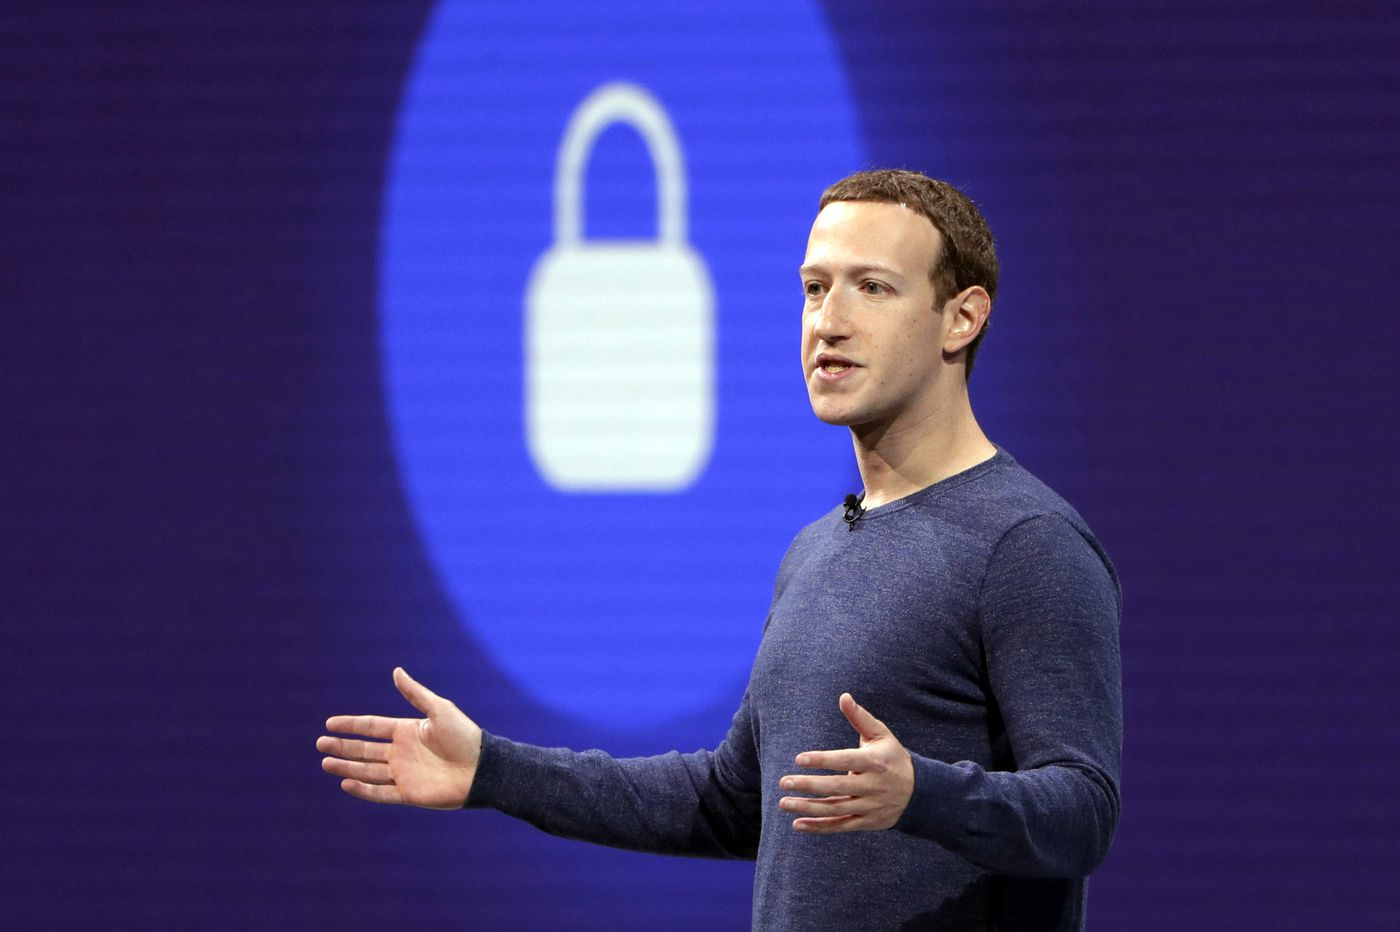 Federal Facebook investigation could hold Zuckerberg accountable on privacy, sources say